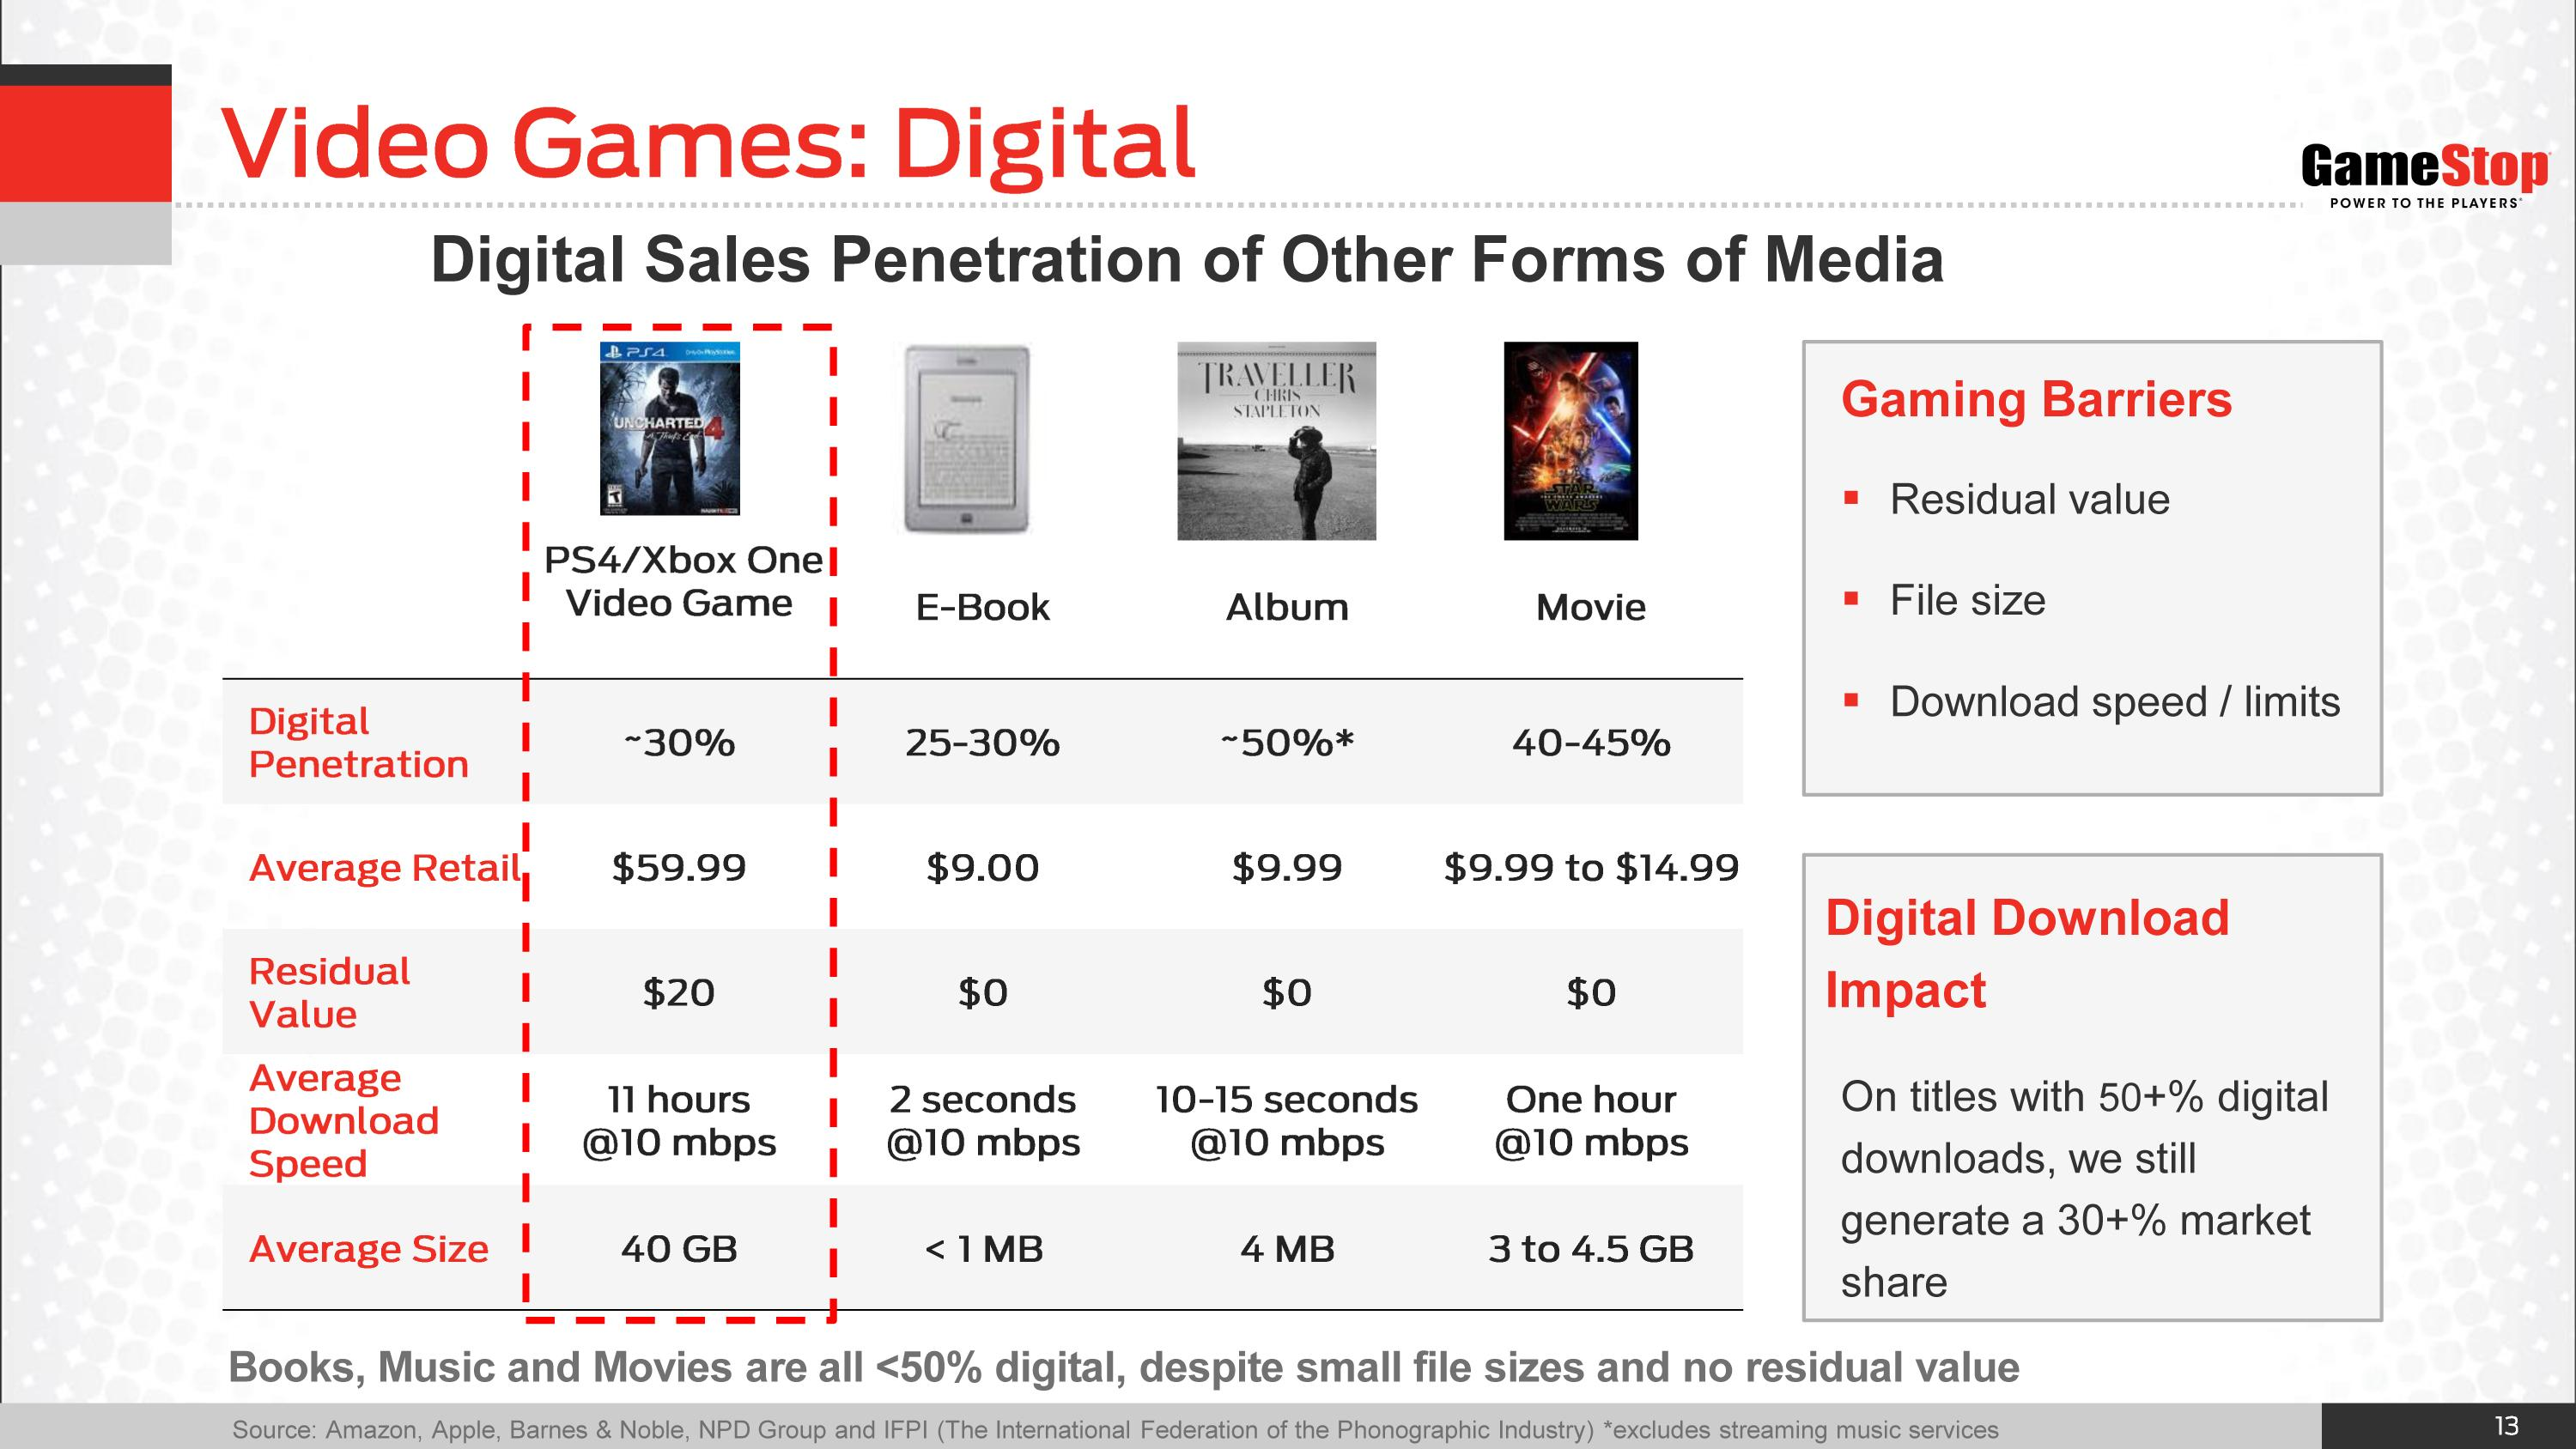 3 Reasons Digital Downloads Drag Down GameStop - GameStop